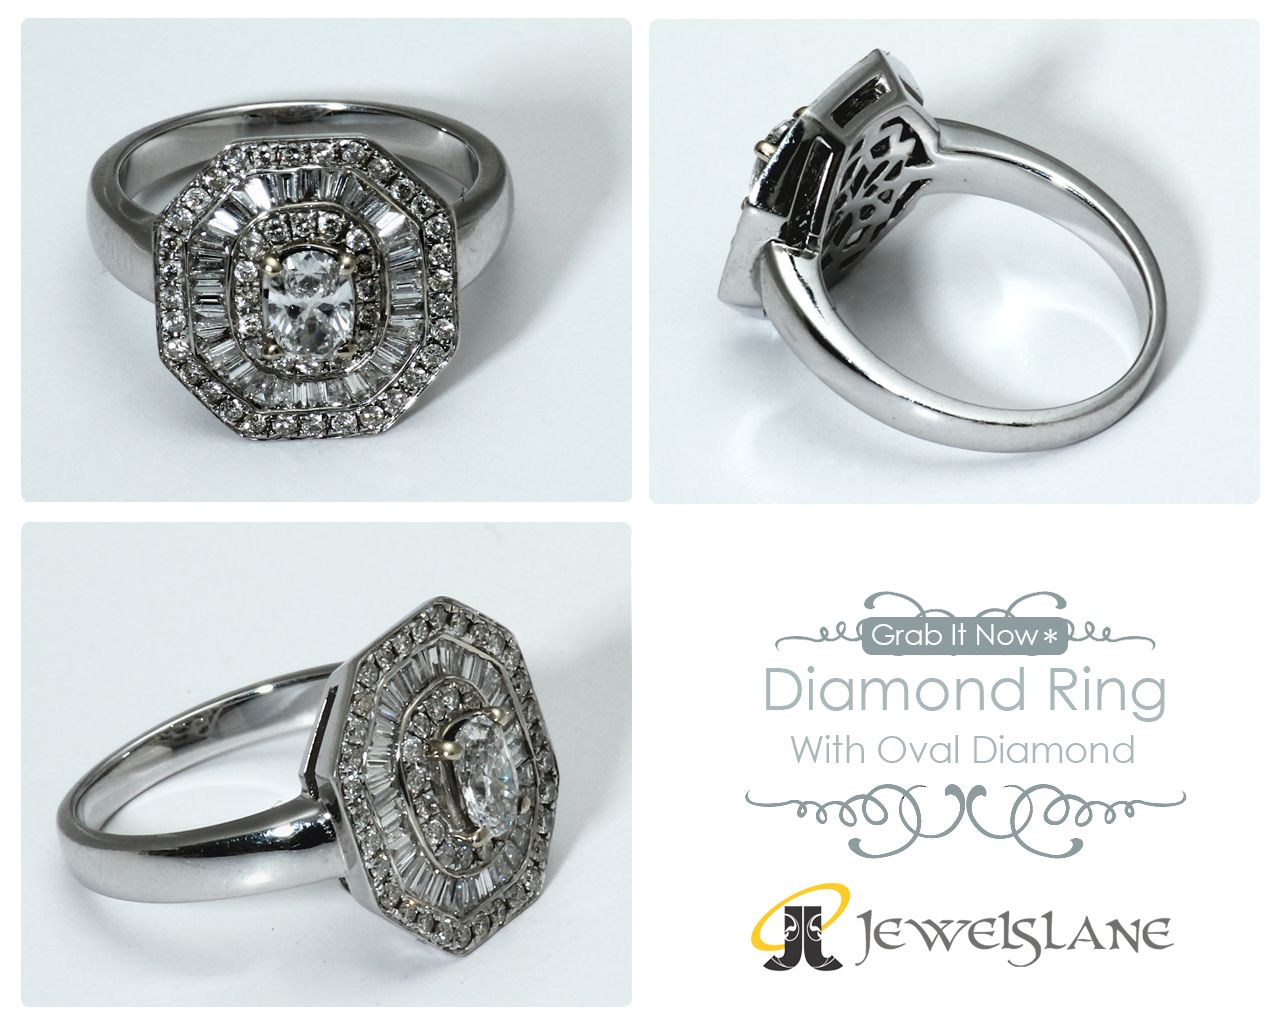 Octagon Shape Diamond Ring With 0 30 Carats Oval